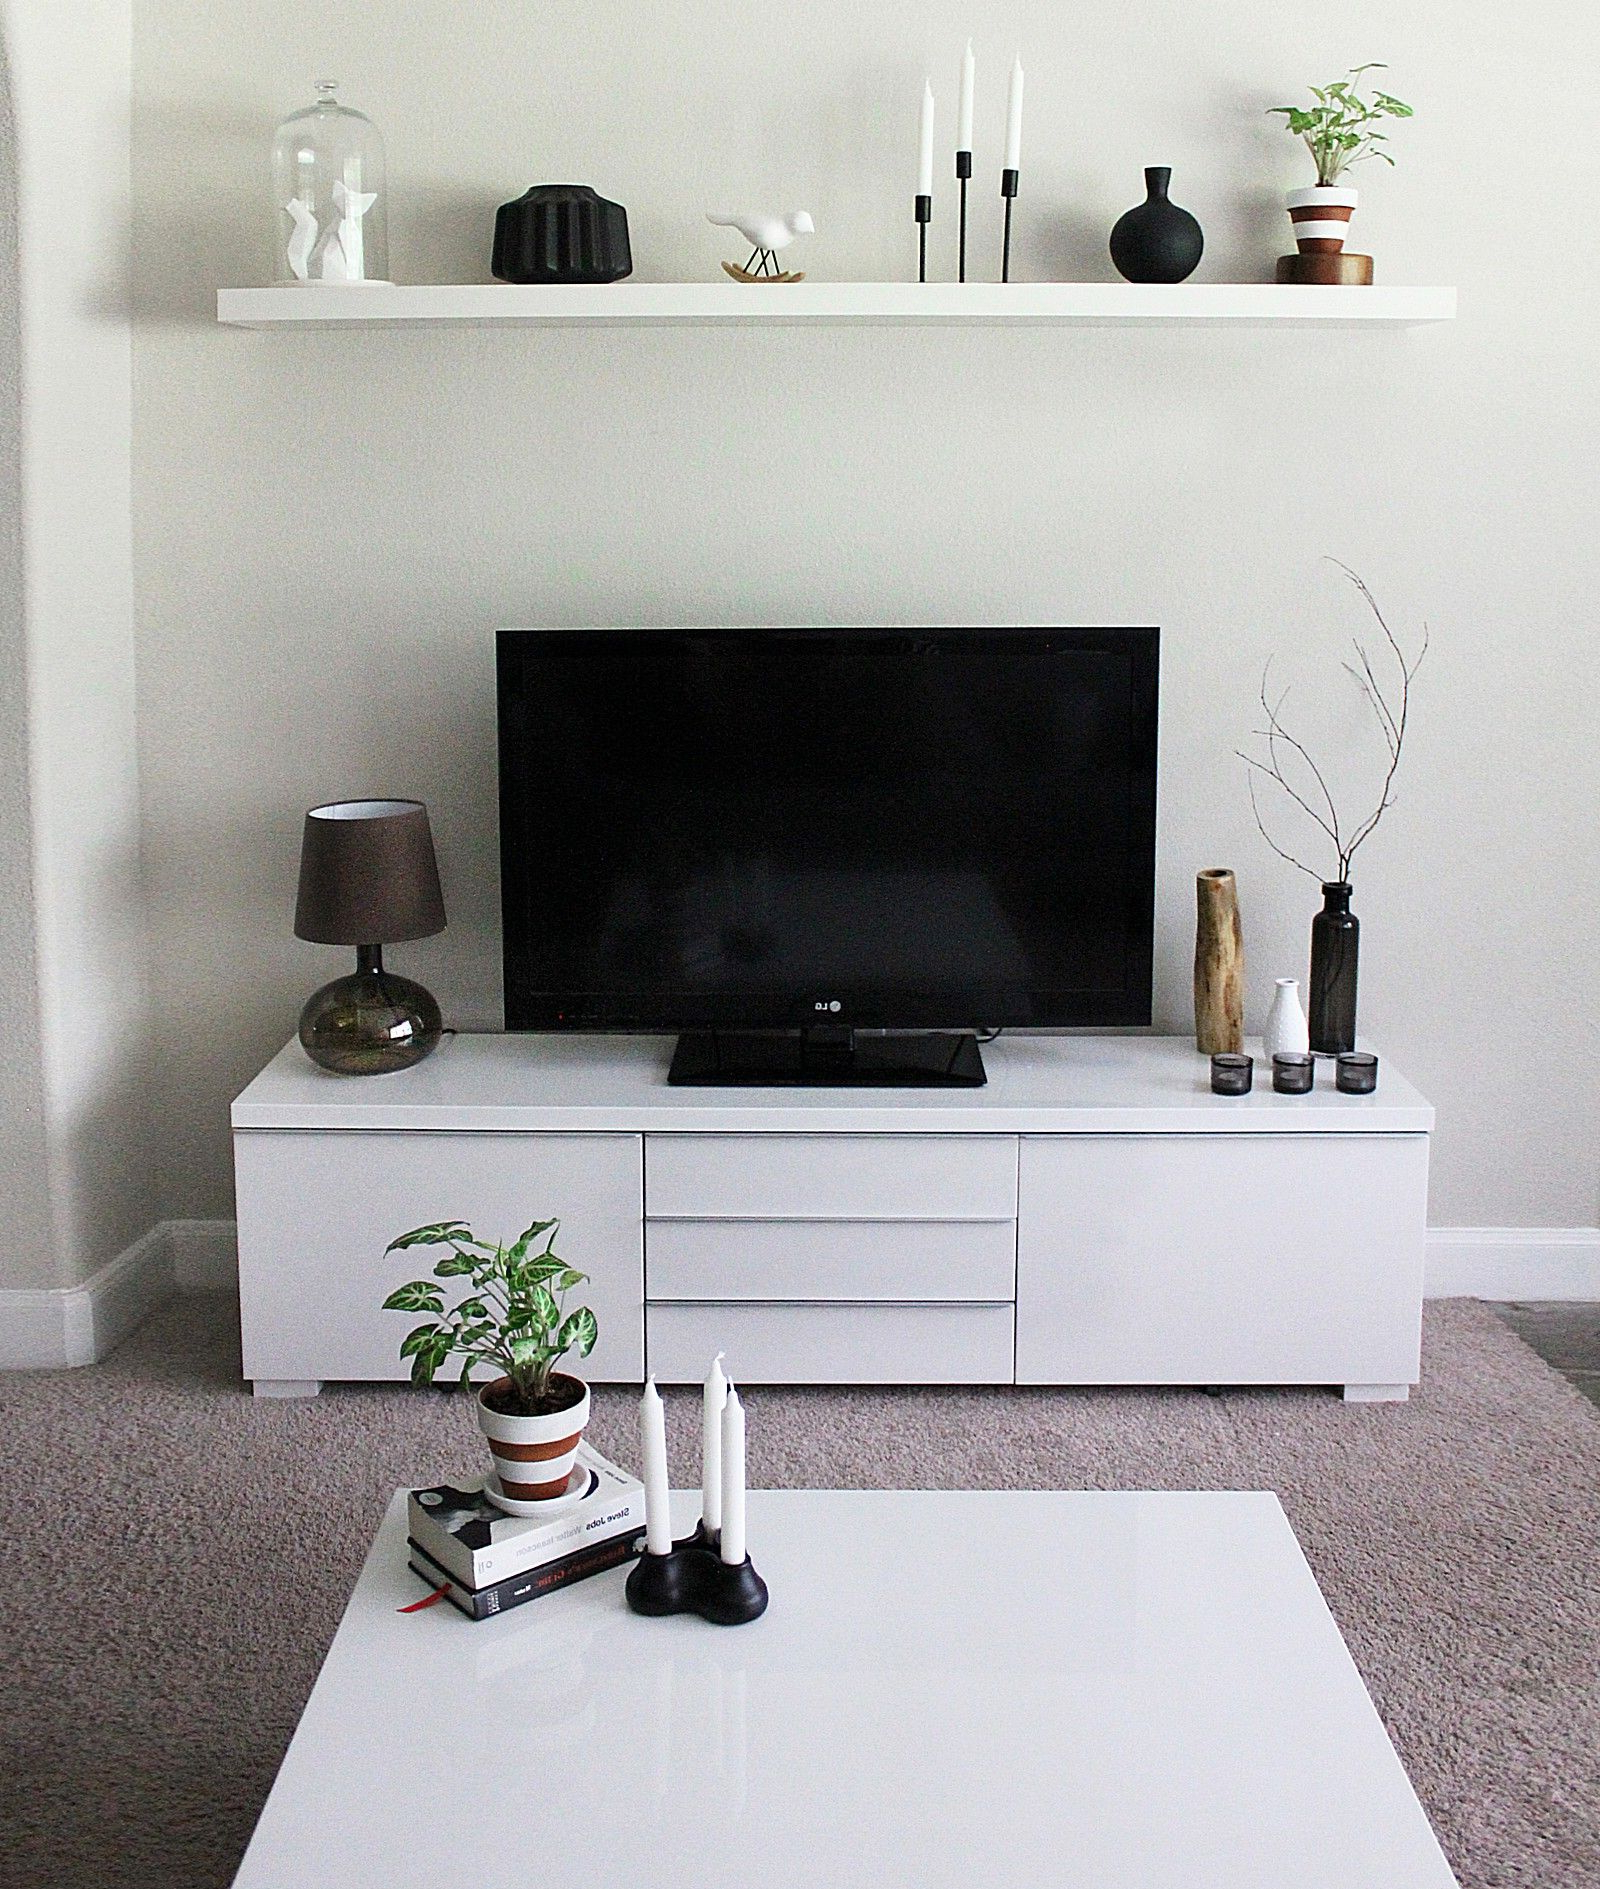 Minimalist Tv Stand And Cabinet Ikea Besta (View 8 of 20)